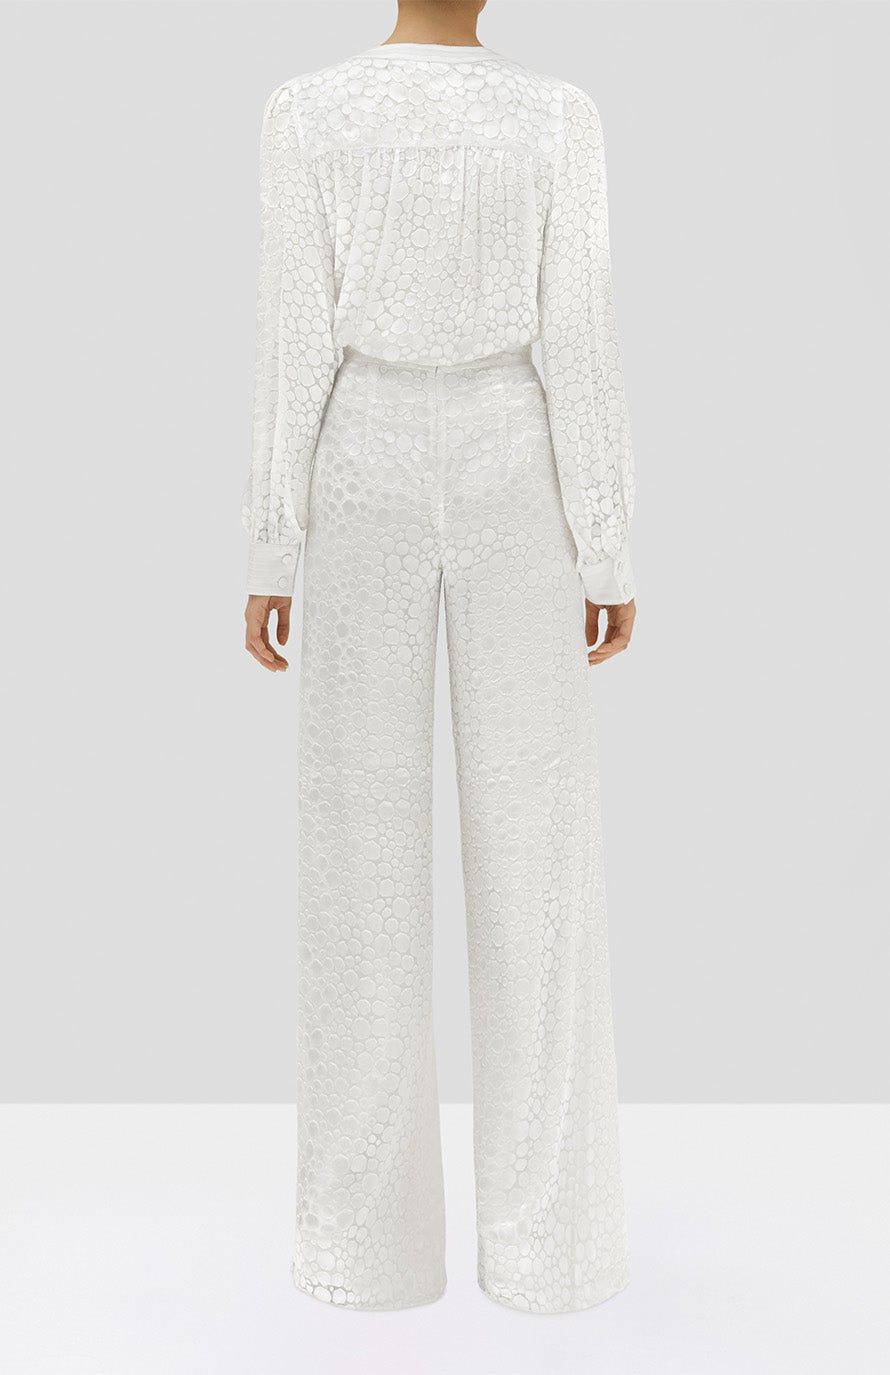 Alexis Rhida Top and Galini Pant in White Geometric from the Holiday 2019 Ready To Wear Collection - Rear View